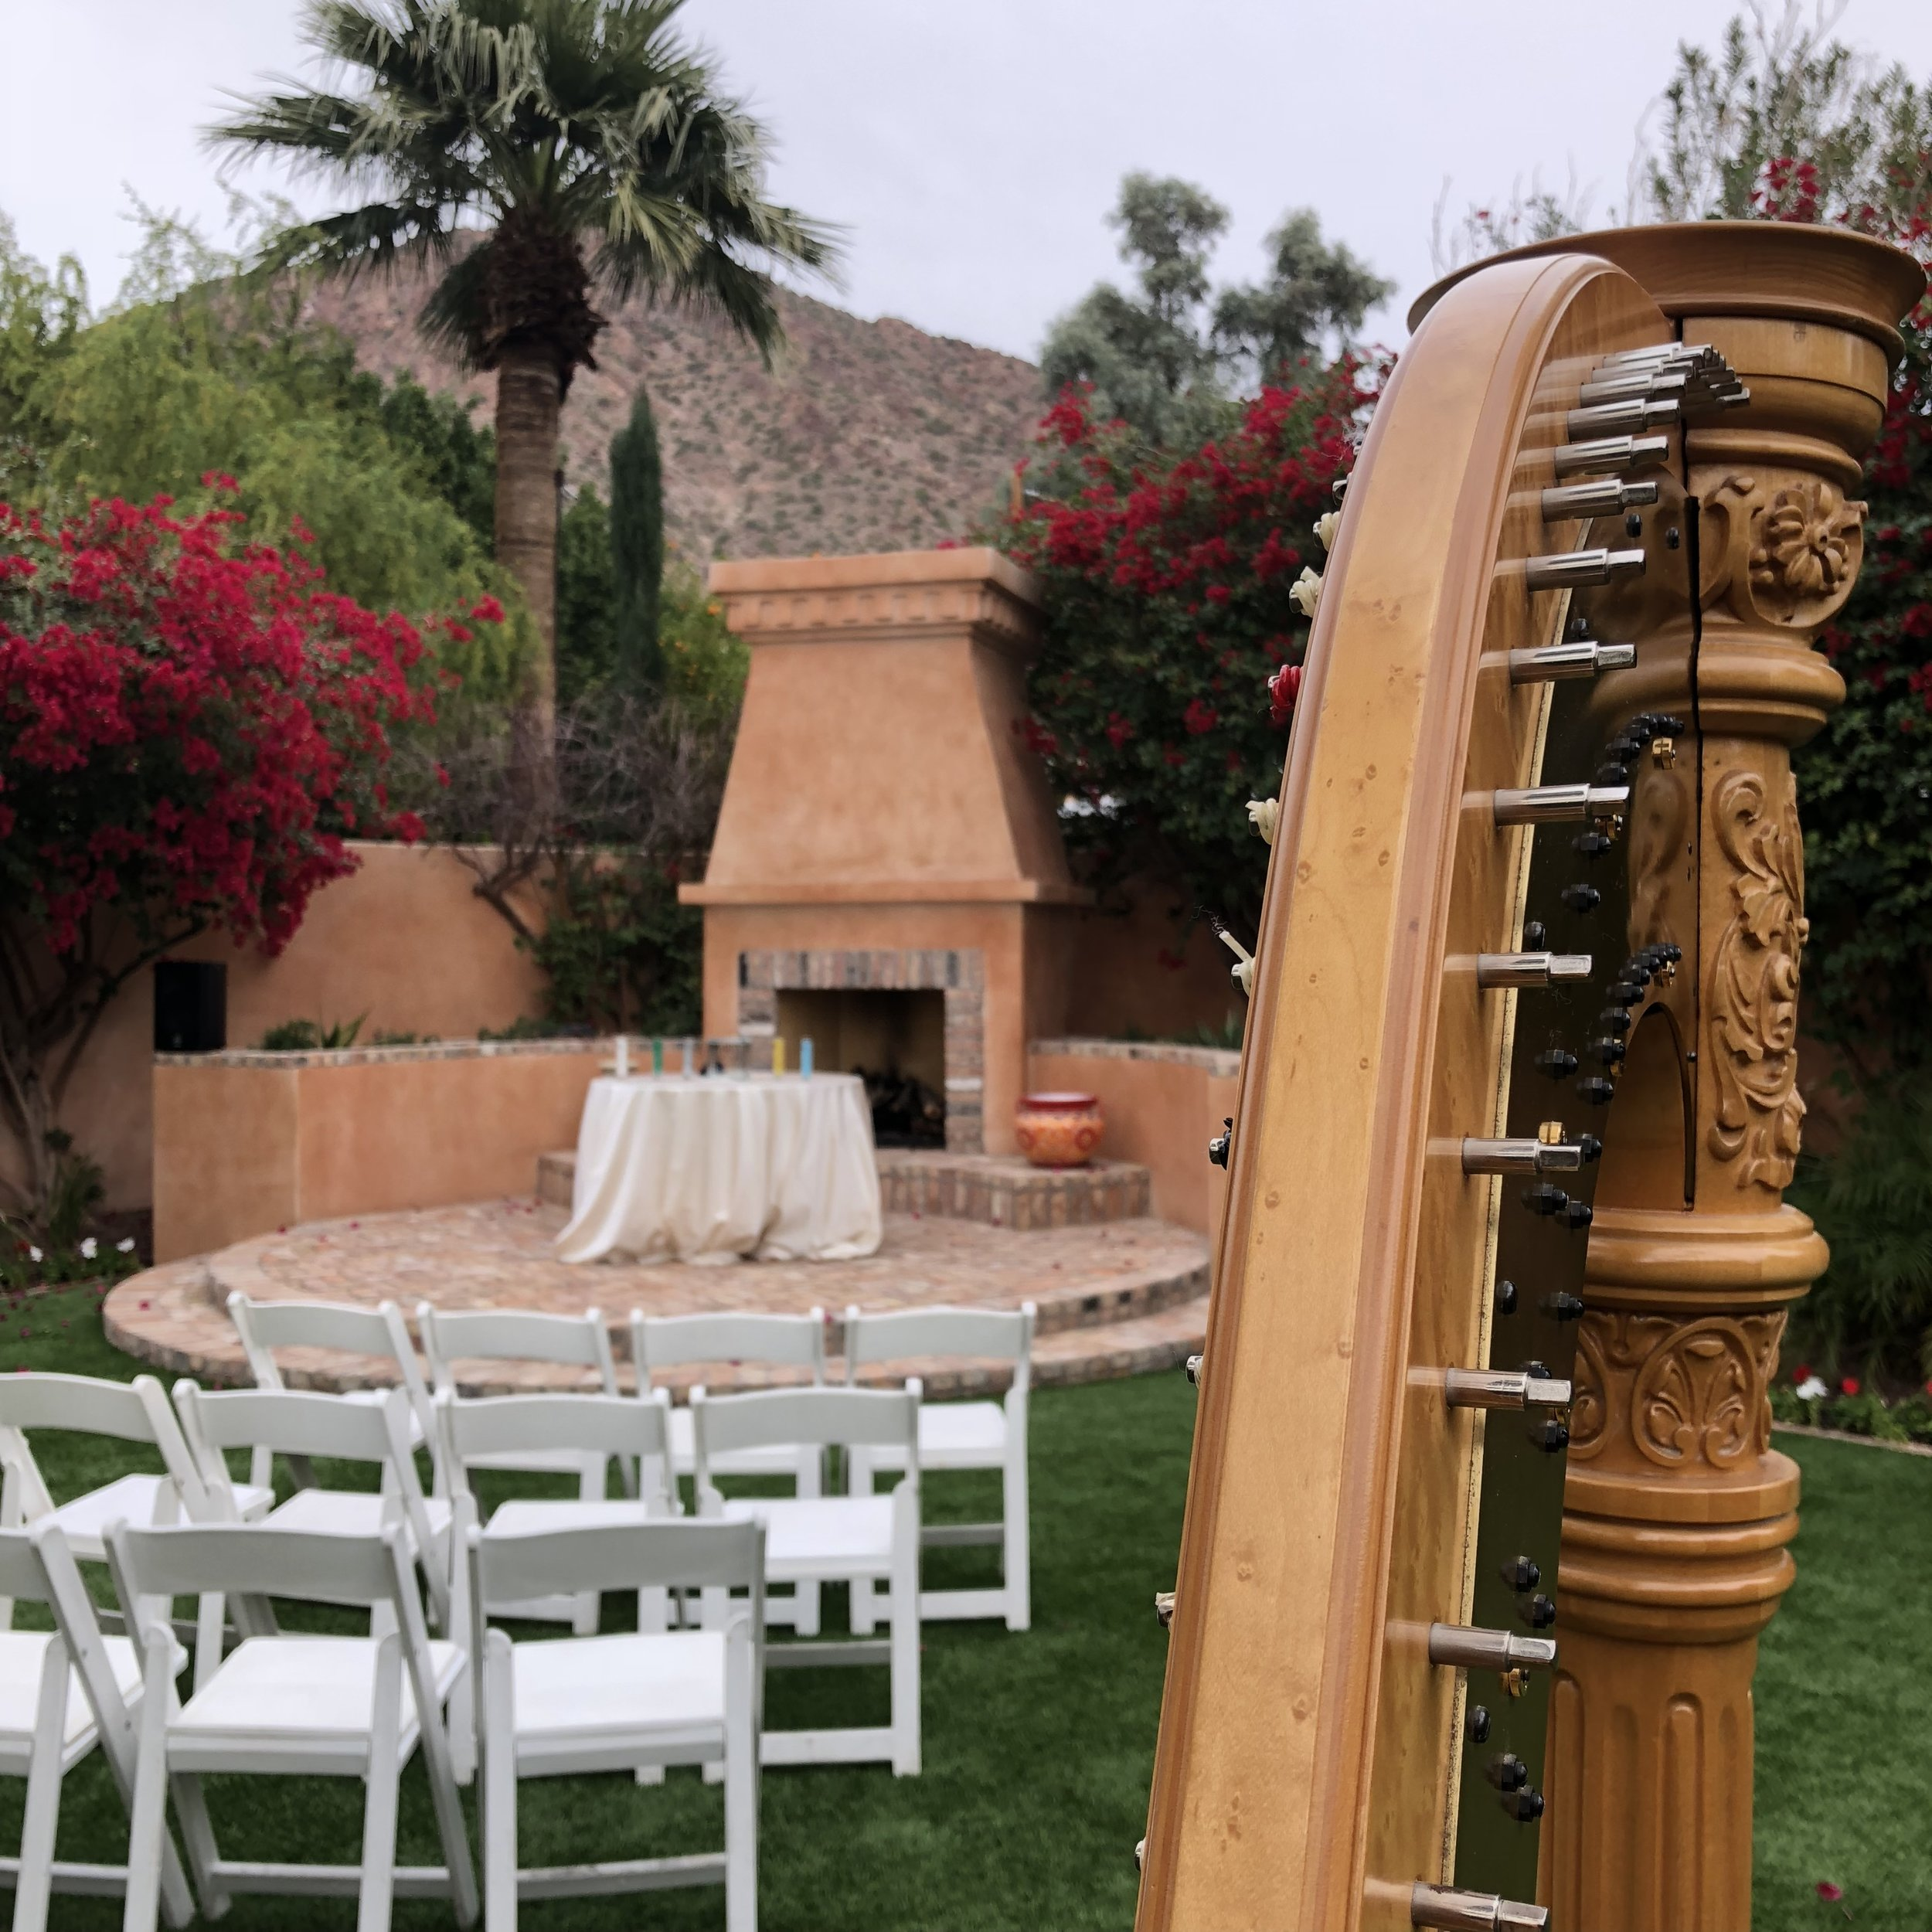 Wedding at the Royal Palms on December 15, 2018